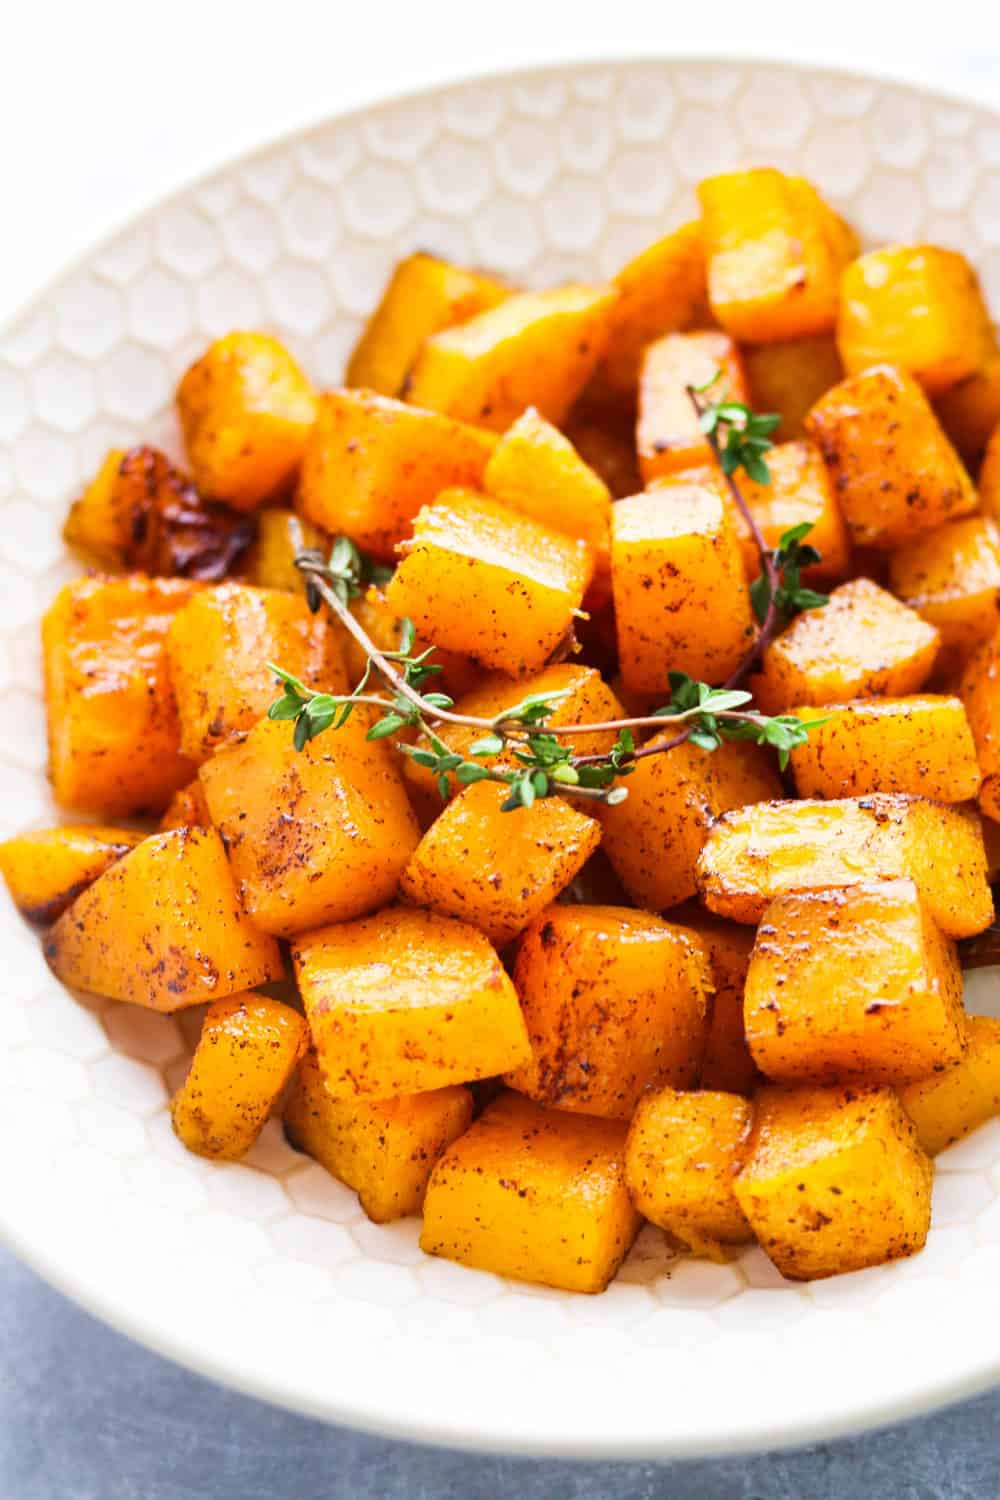 Roasted squash with thyme on top of it in a white bowl.